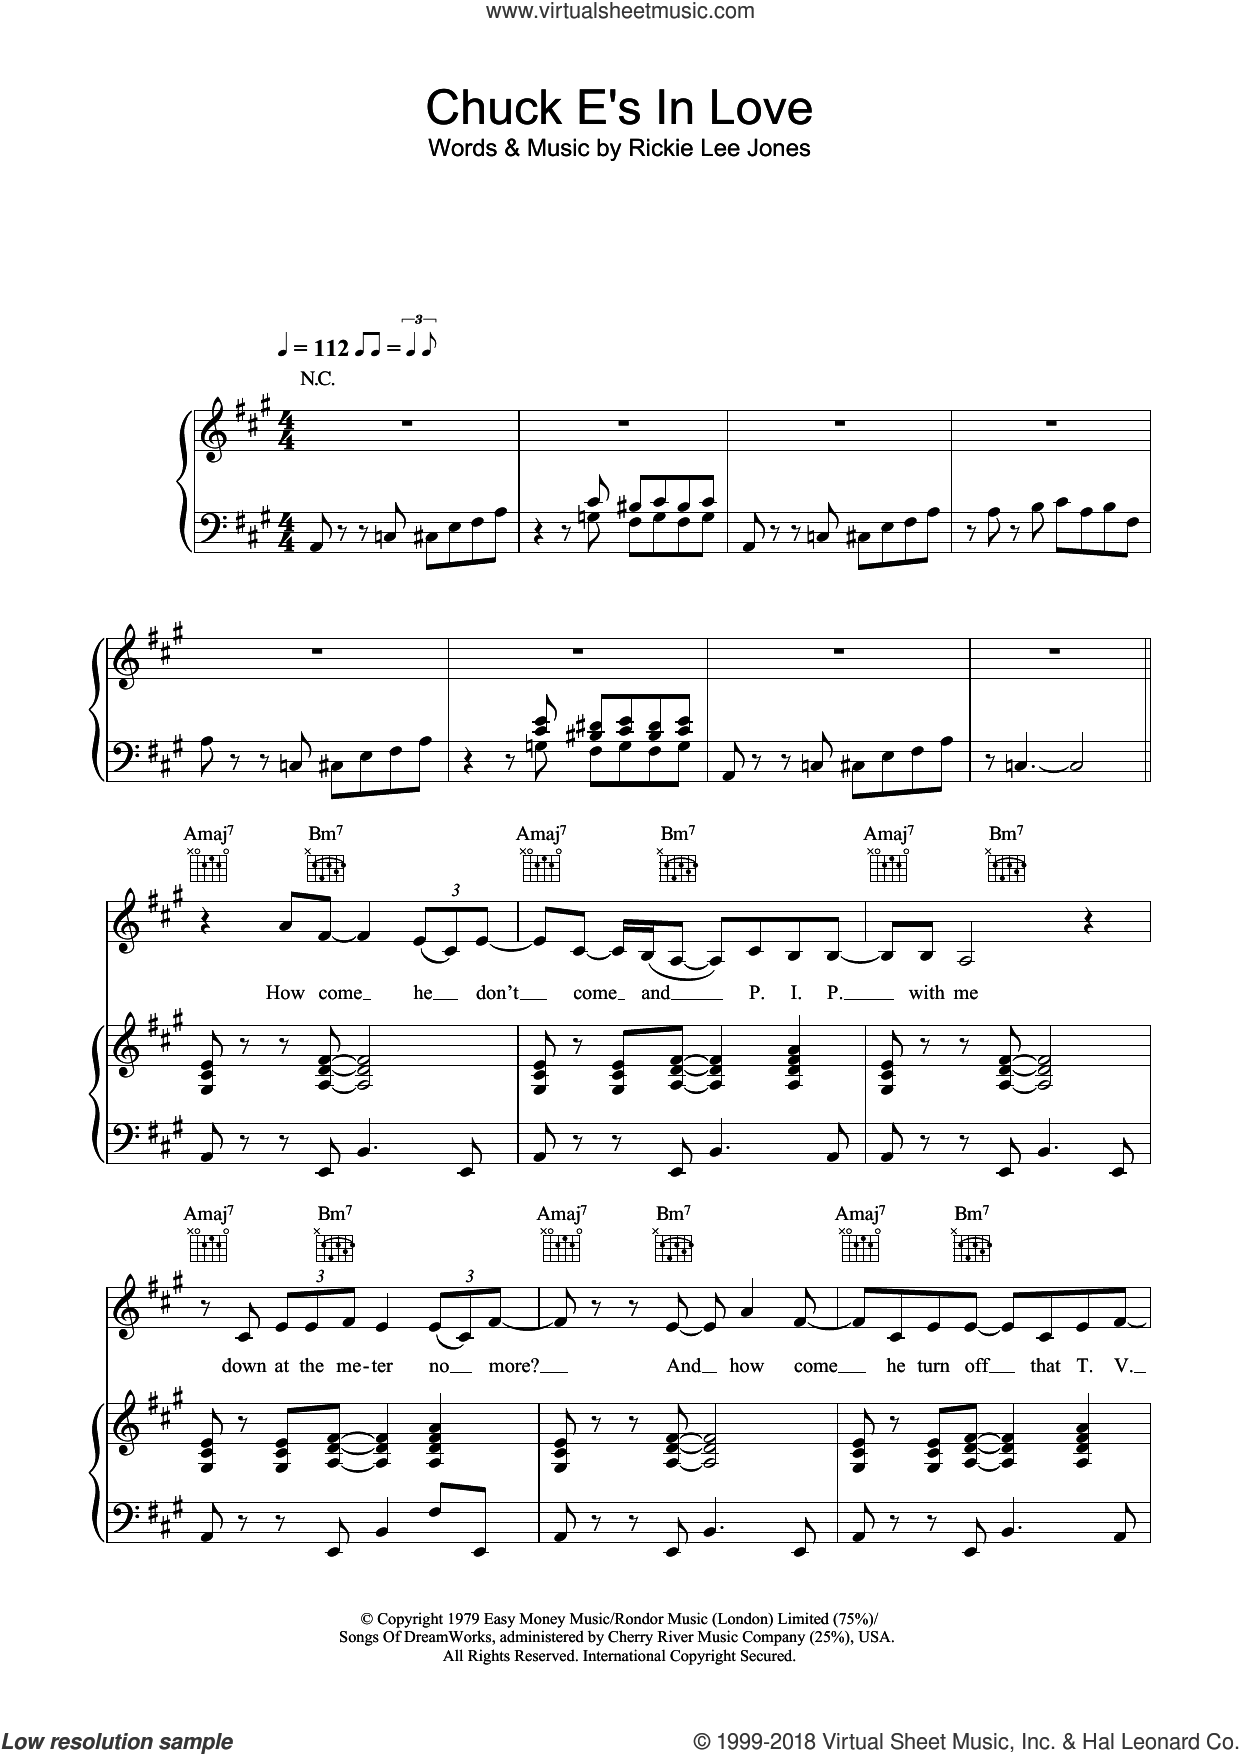 Chuck E's In Love sheet music for voice, piano or guitar by Rickie Lee Jones, intermediate. Score Image Preview.